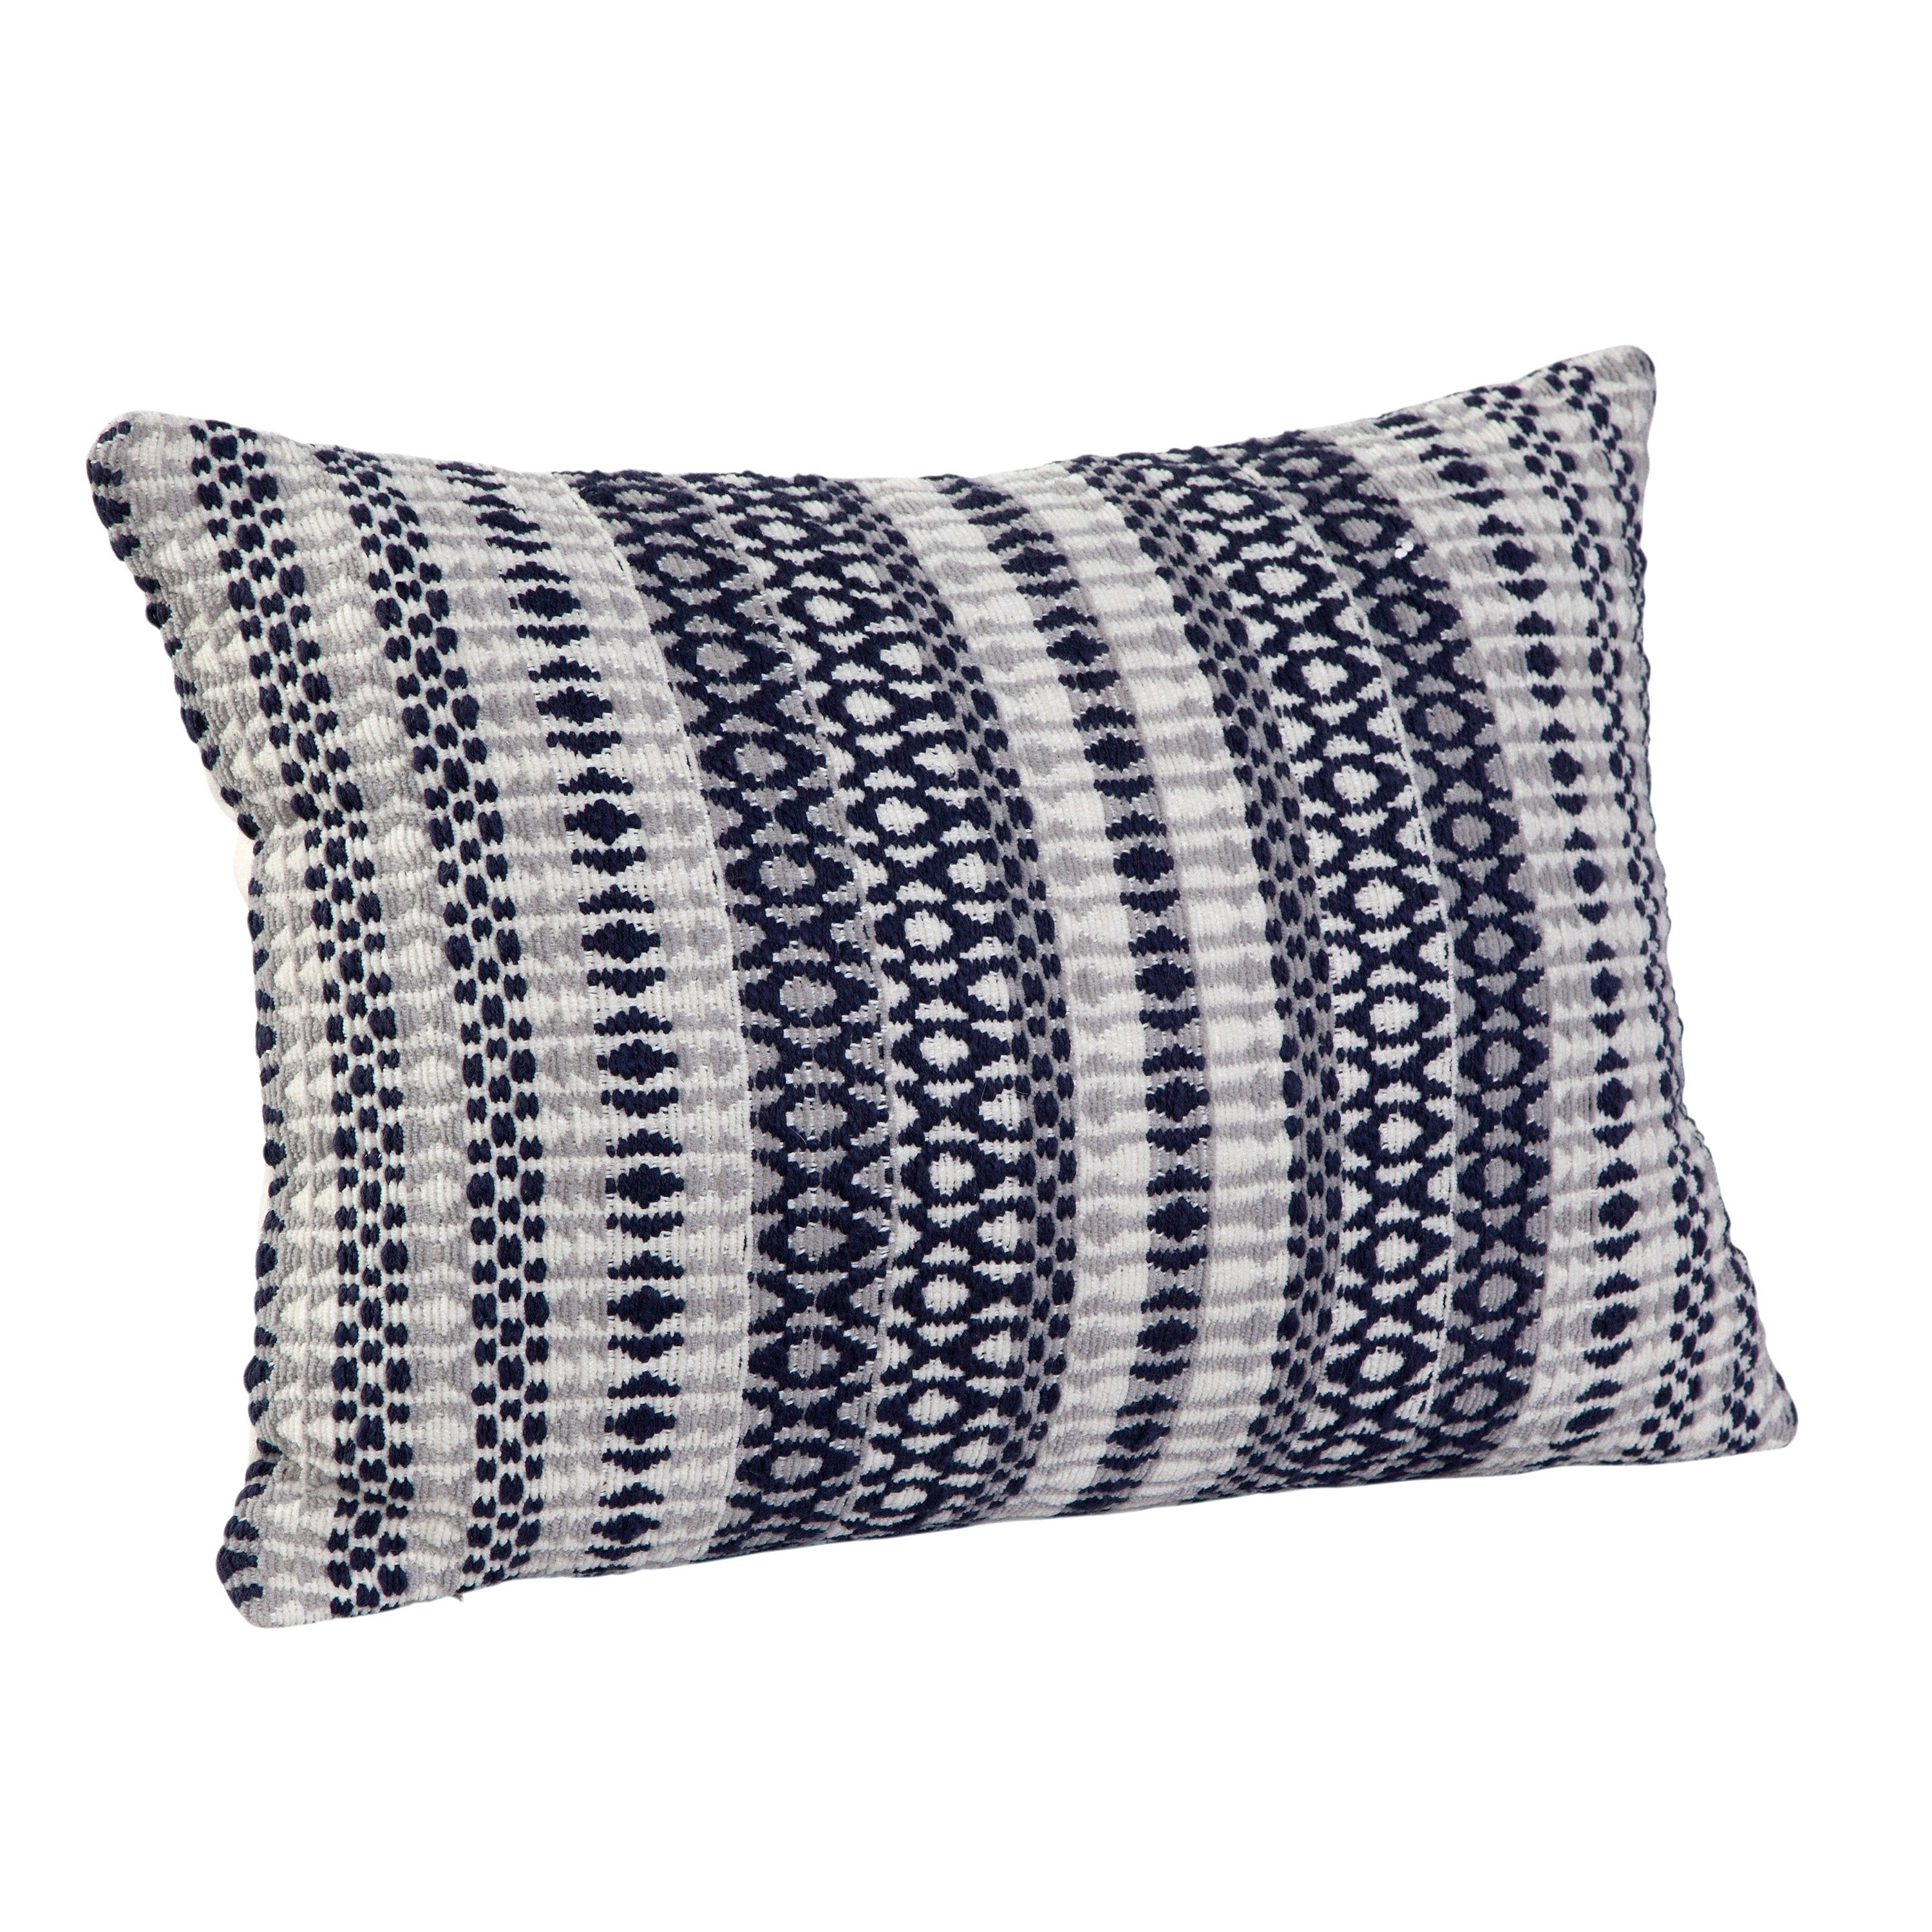 Shop Lazzelle Navy/White/Grey Throw Pillow by Greyson Living